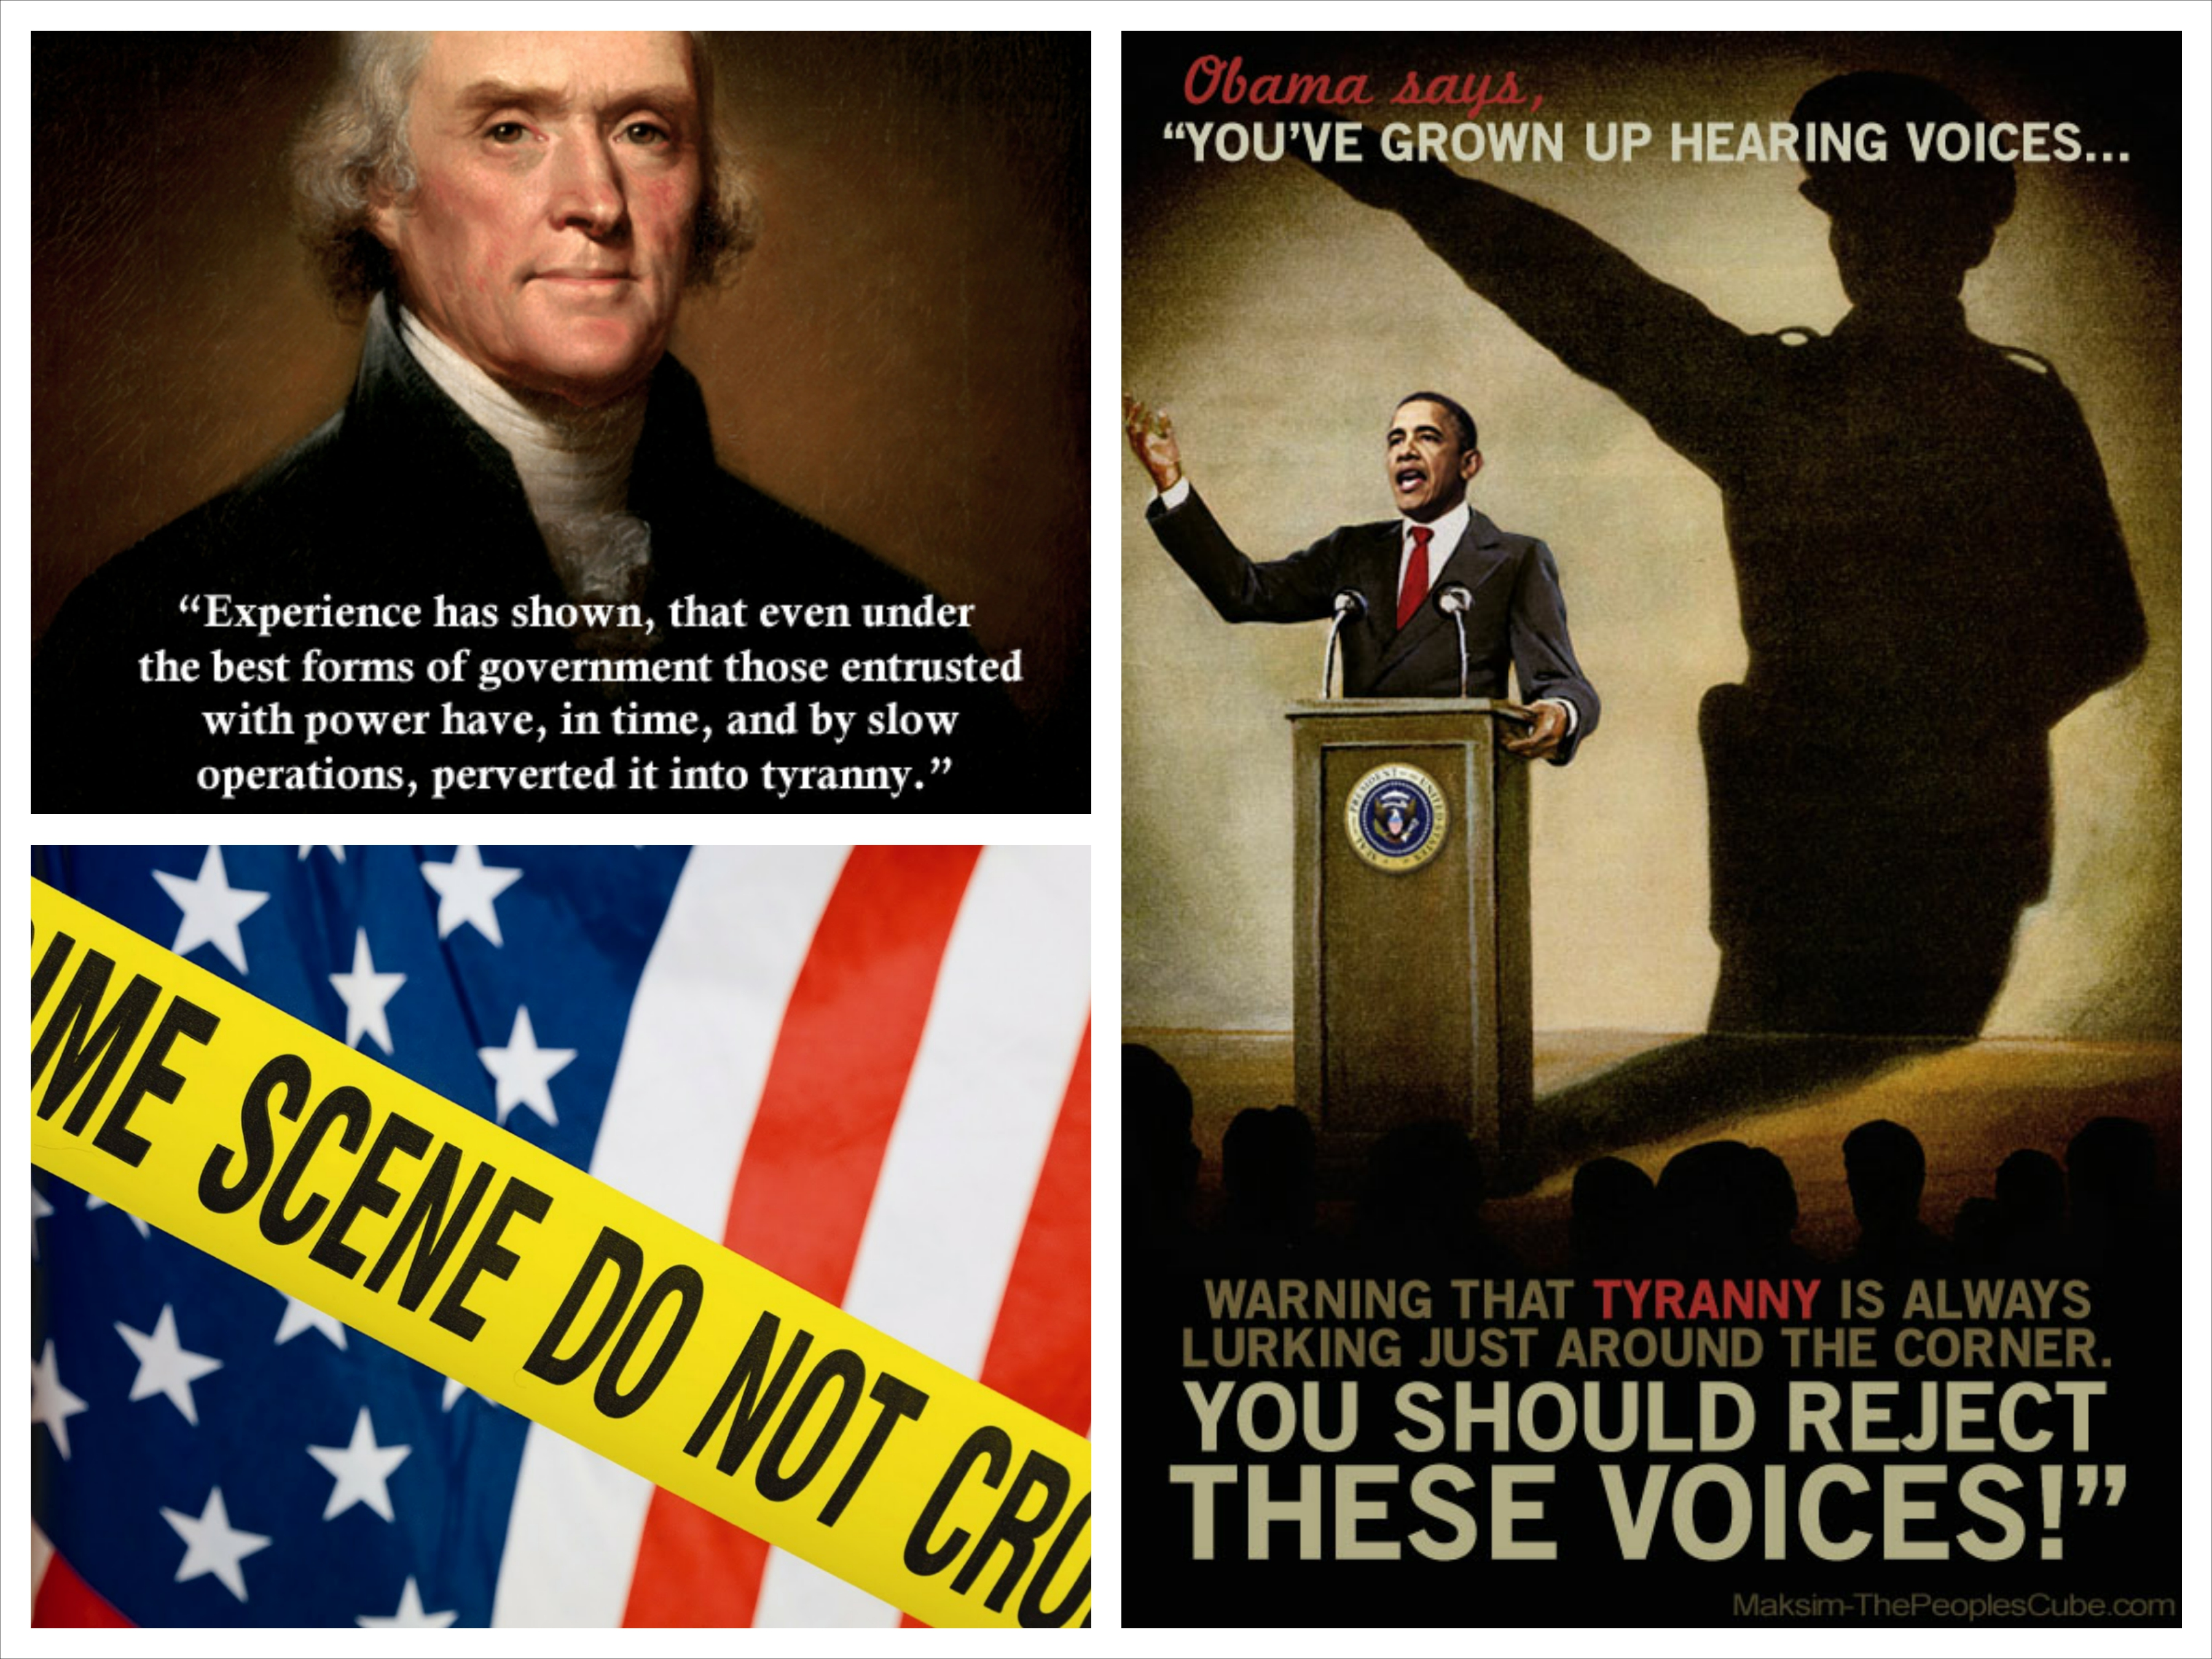 Who's lying, Snowden or the Obama regime?